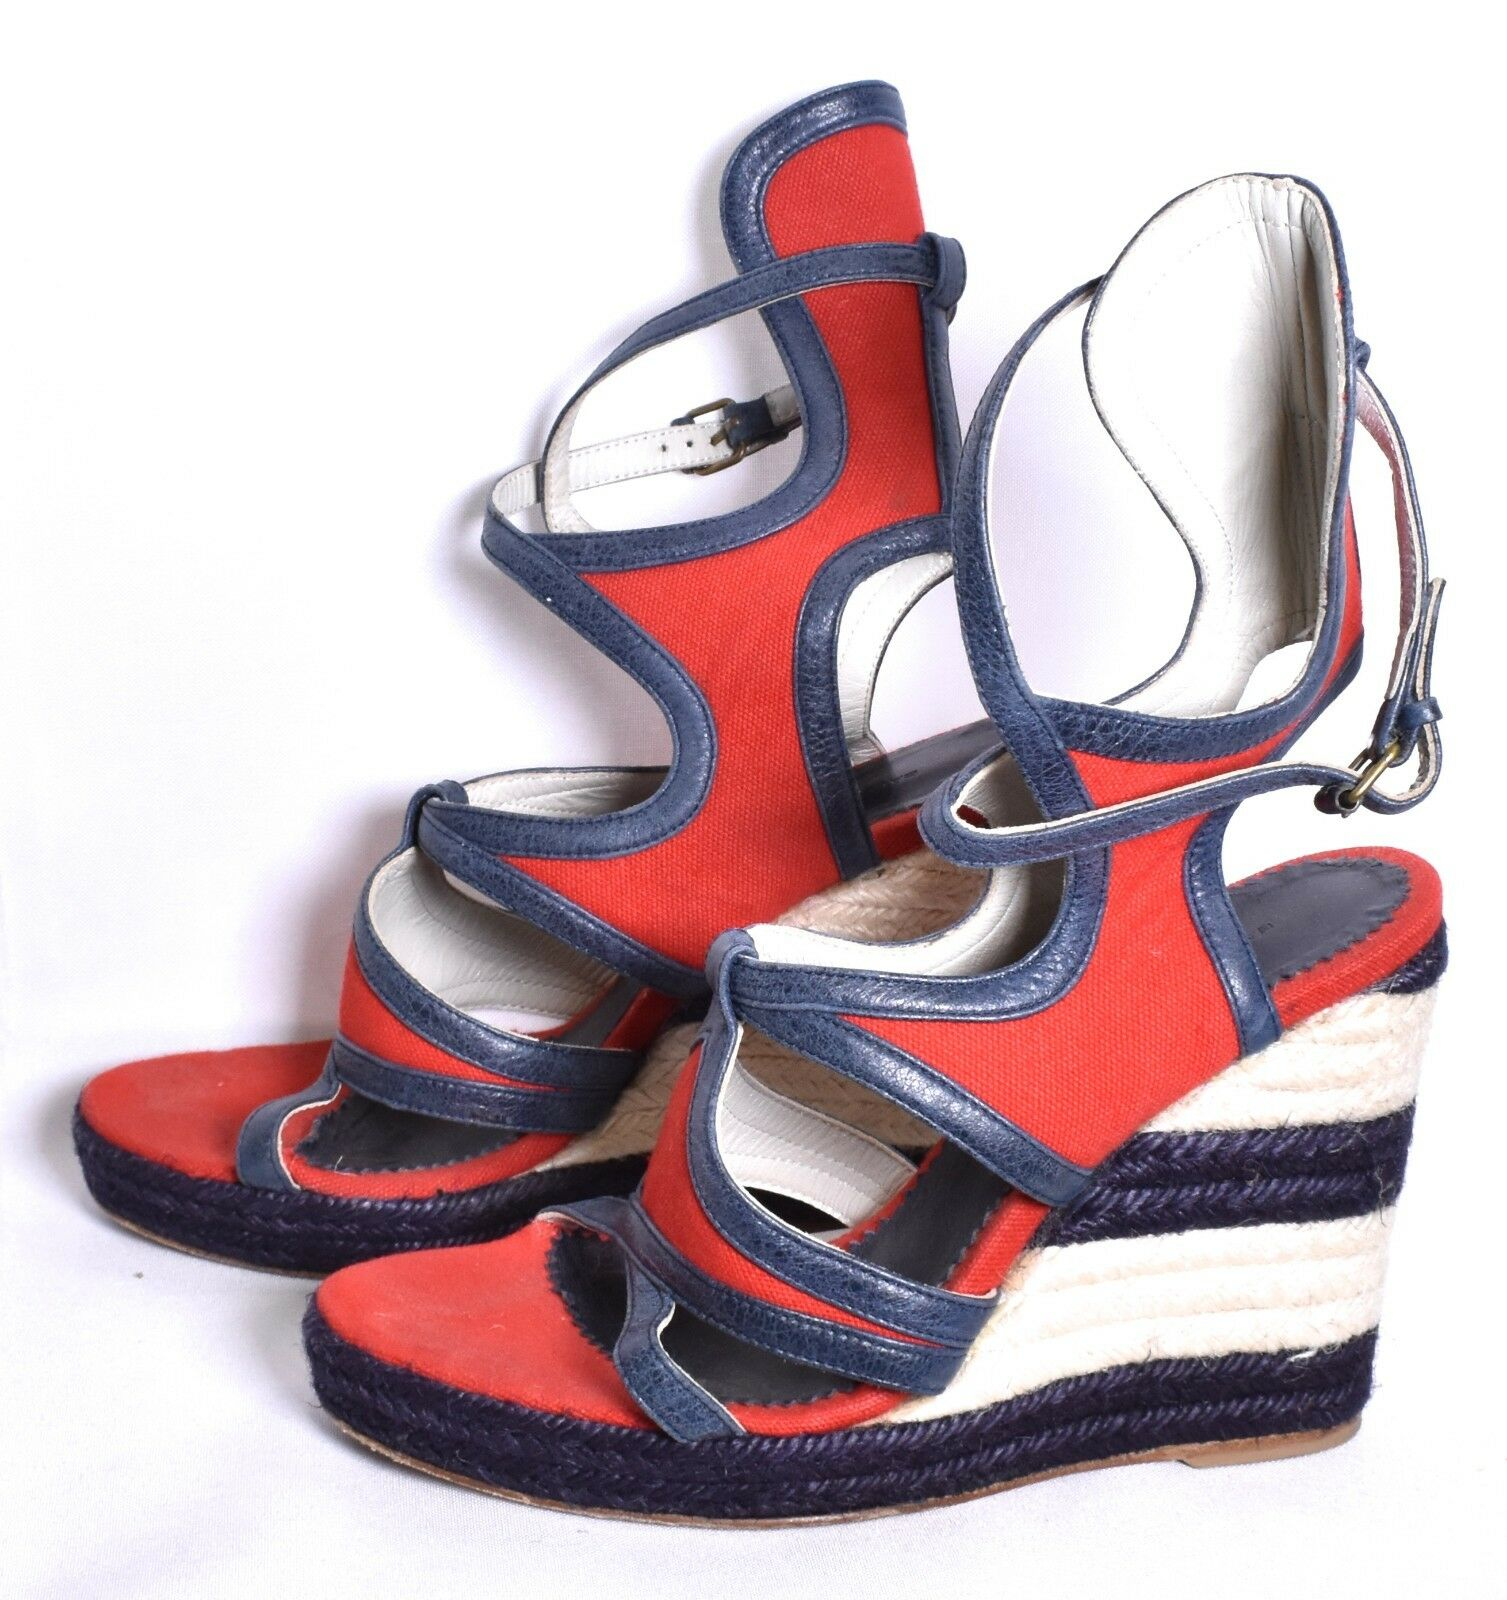 BALENCIAGA Espadrille Canvas Gladiator Credver Wedge Sandal (Sz 38 8) Red bluee